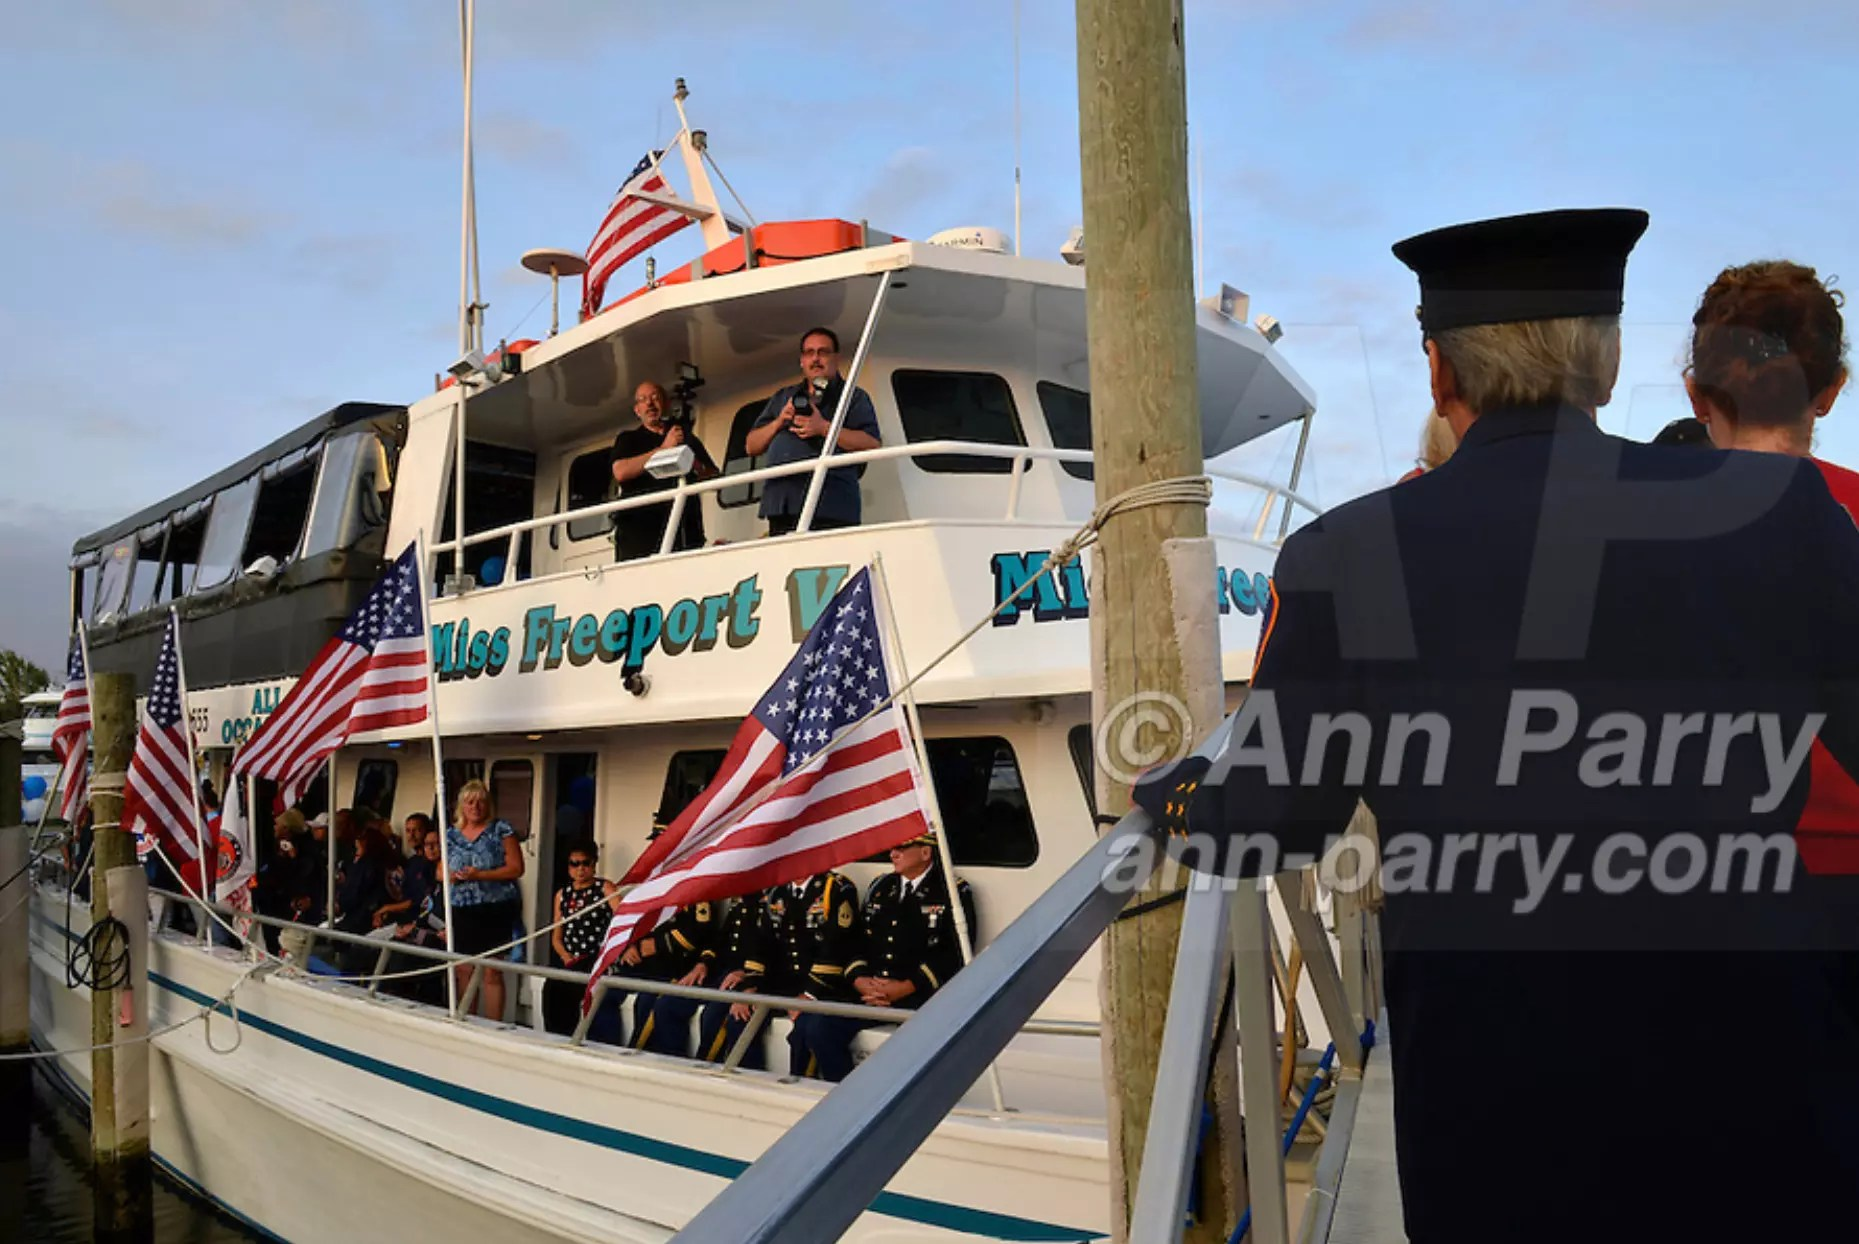 Freeport, NY, USA. Sept. 10, 2014. After a dockside remembrance ceremony in honor of victims of the terrorist attacks of September 11 2001, passengers walk up the gangplank to board the boat Miss Freeport V, which sailed from the Woodcleft Canal on Freeport's Nautical Mile on Long Island, on the eve of the 13th Anniversary of the 9/11 attacks. Further ceremonies were held on the boat.